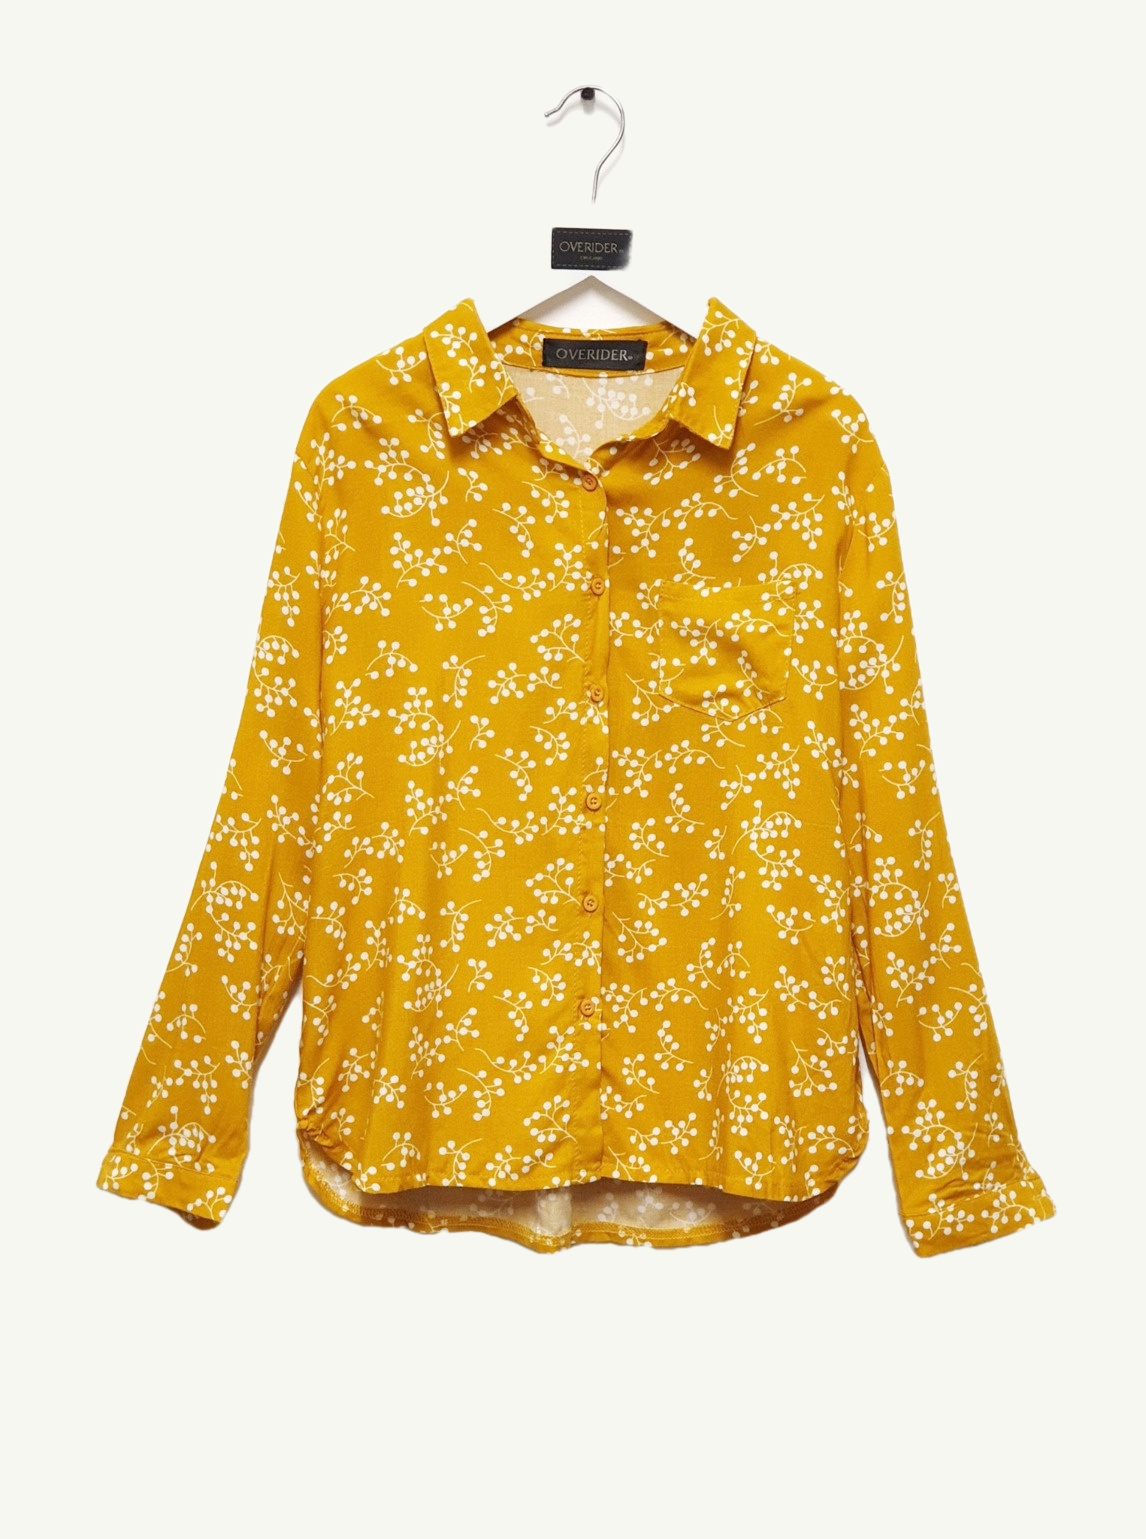 SABINE - Girls Floral Shirt - Ochre